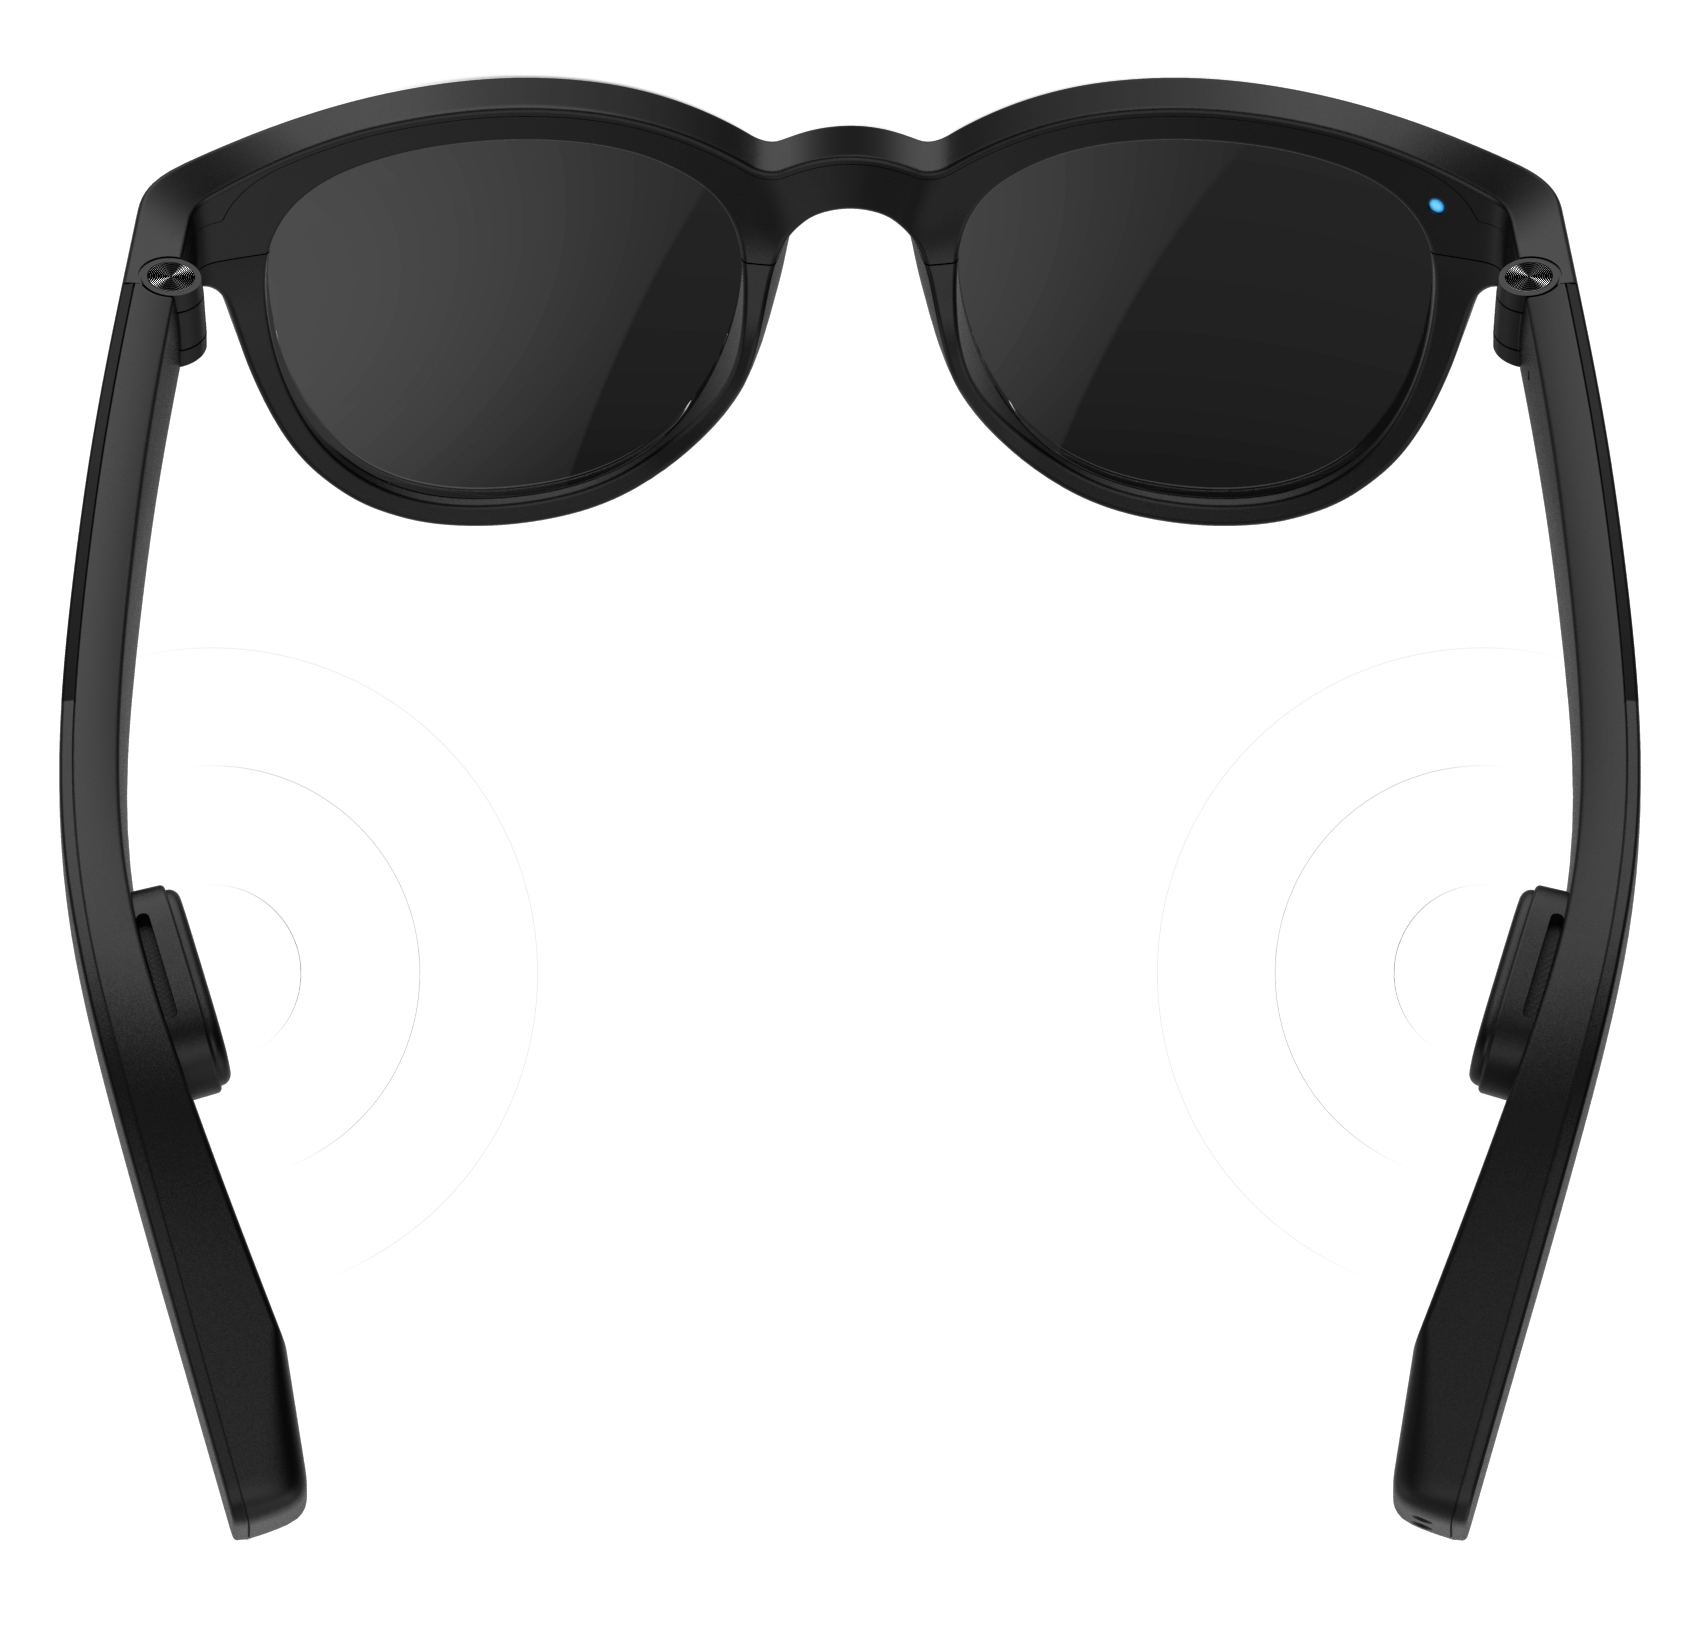 Vue Pro Classic with sound waves coming out of the two bone conduction pads on the legs of the glasses